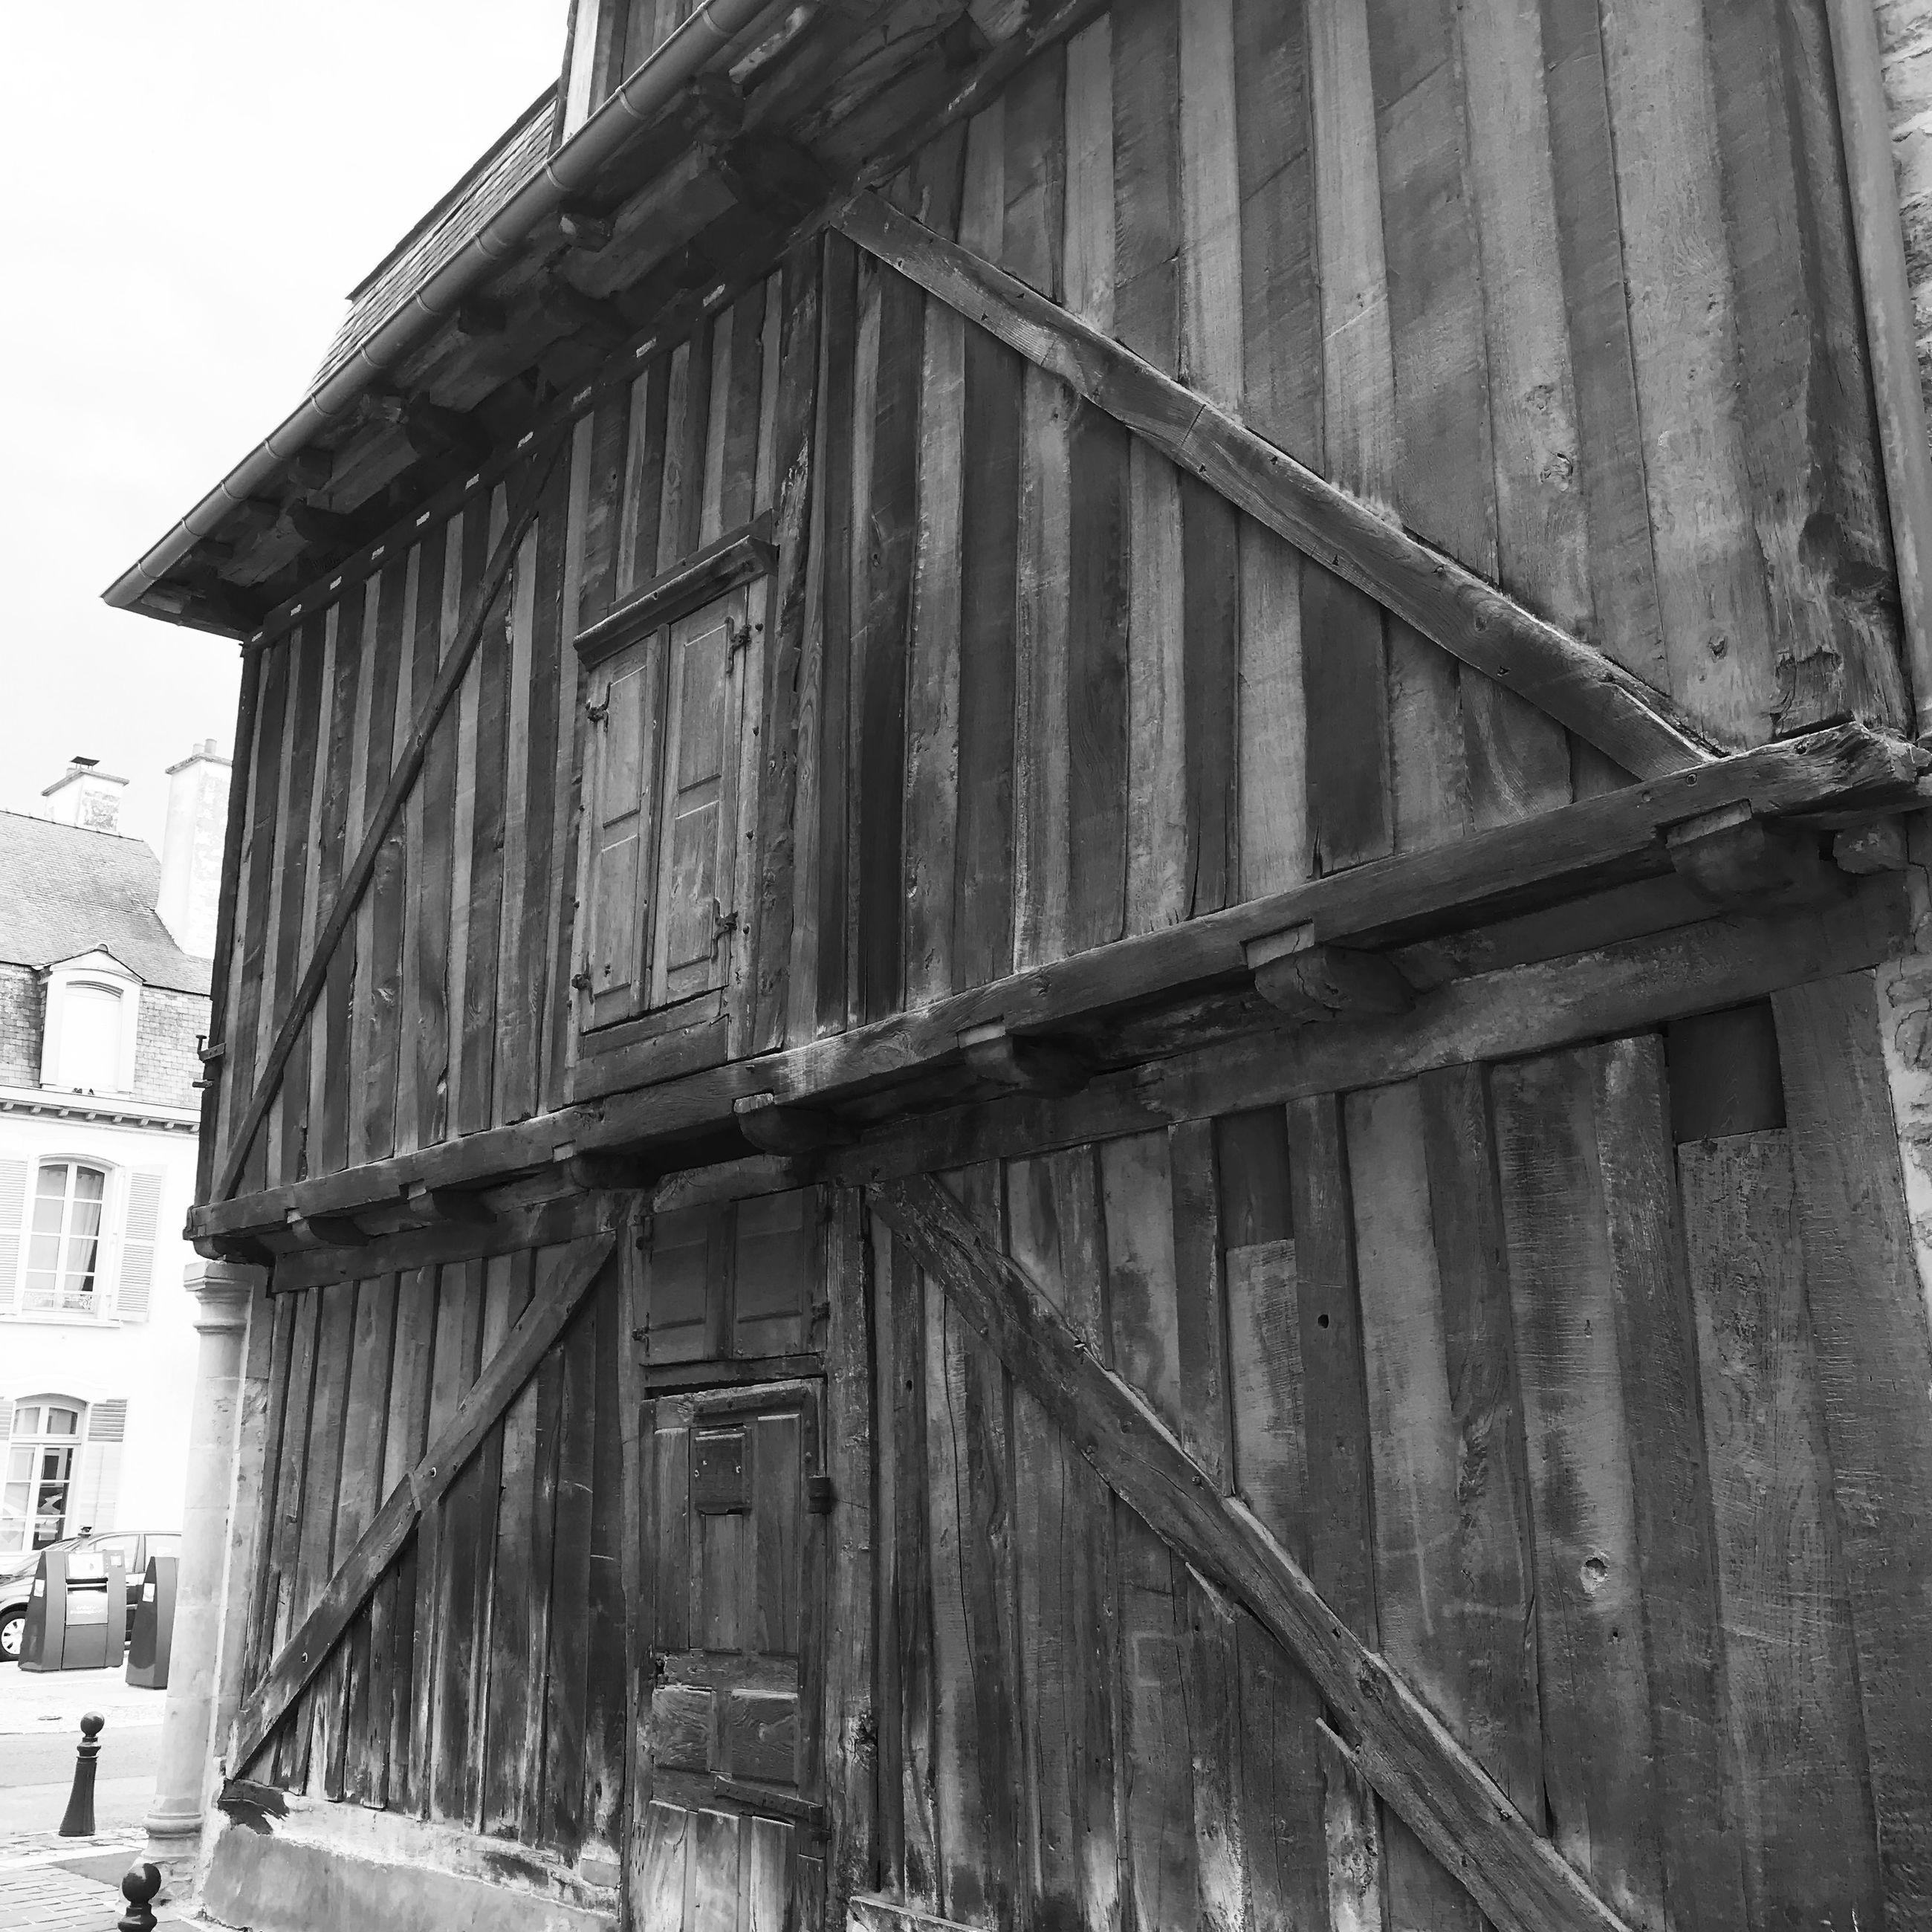 architecture, built structure, building exterior, black and white, building, house, monochrome, day, monochrome photography, old, wood, city, no people, outdoors, nature, residential district, sky, low angle view, history, urban area, facade